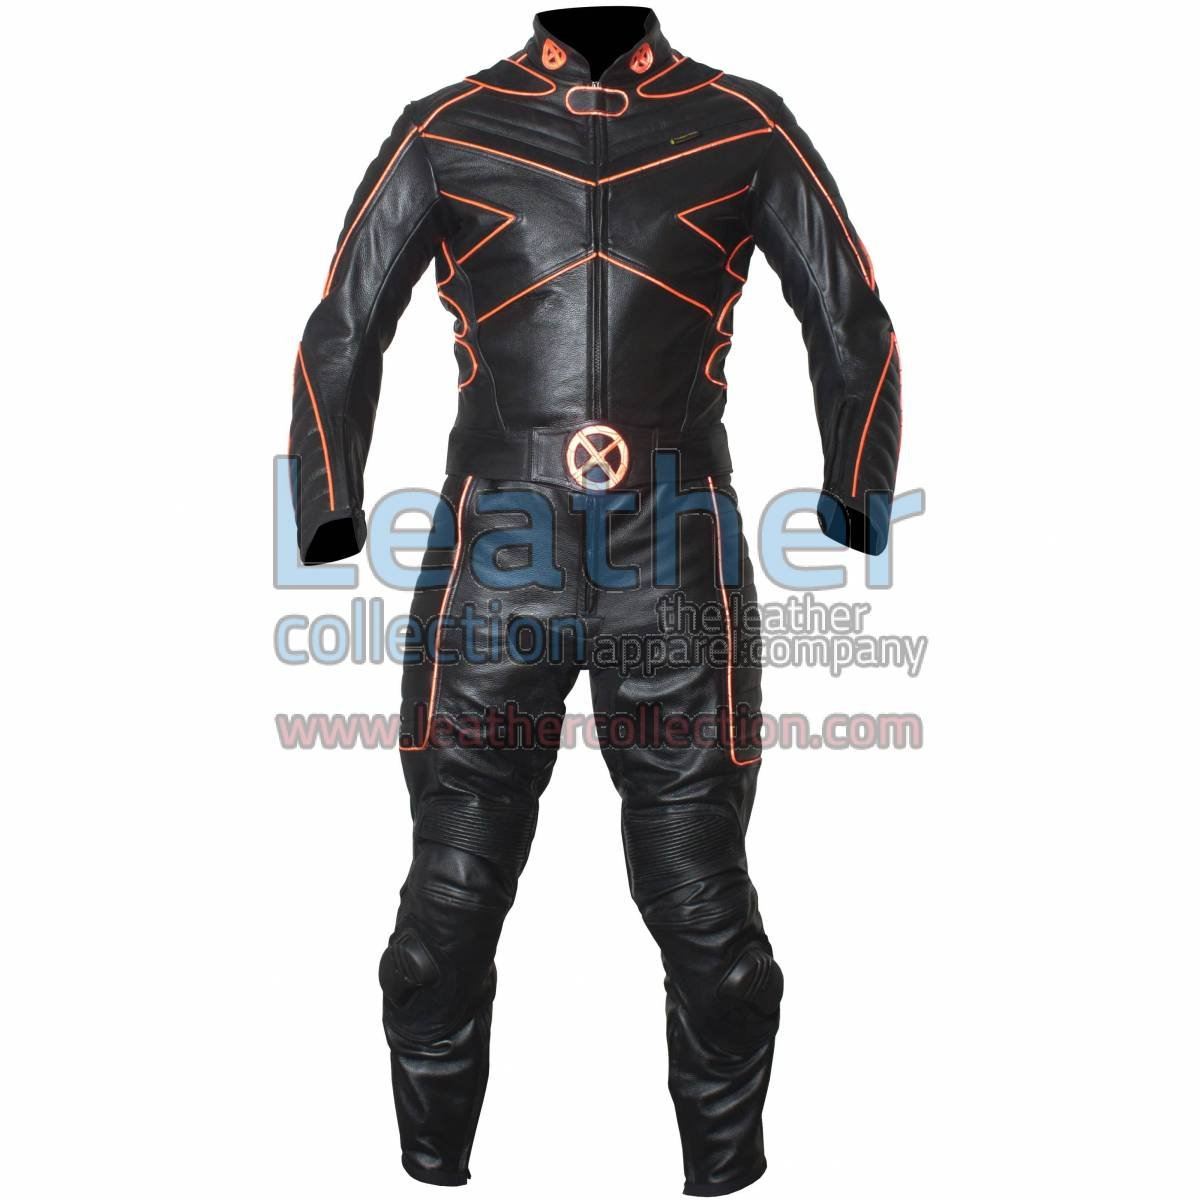 X-MEN Motorcycle Racing Leather Suit with Orange Piping